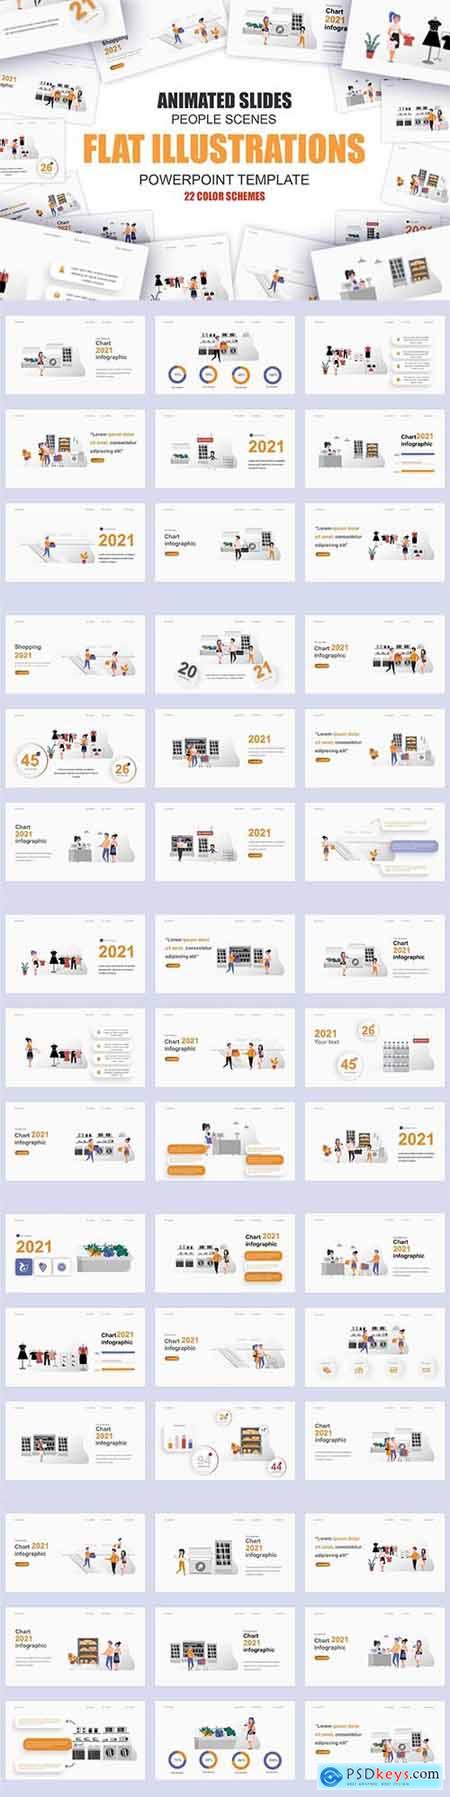 Shopping Illustration Powerpoint Template